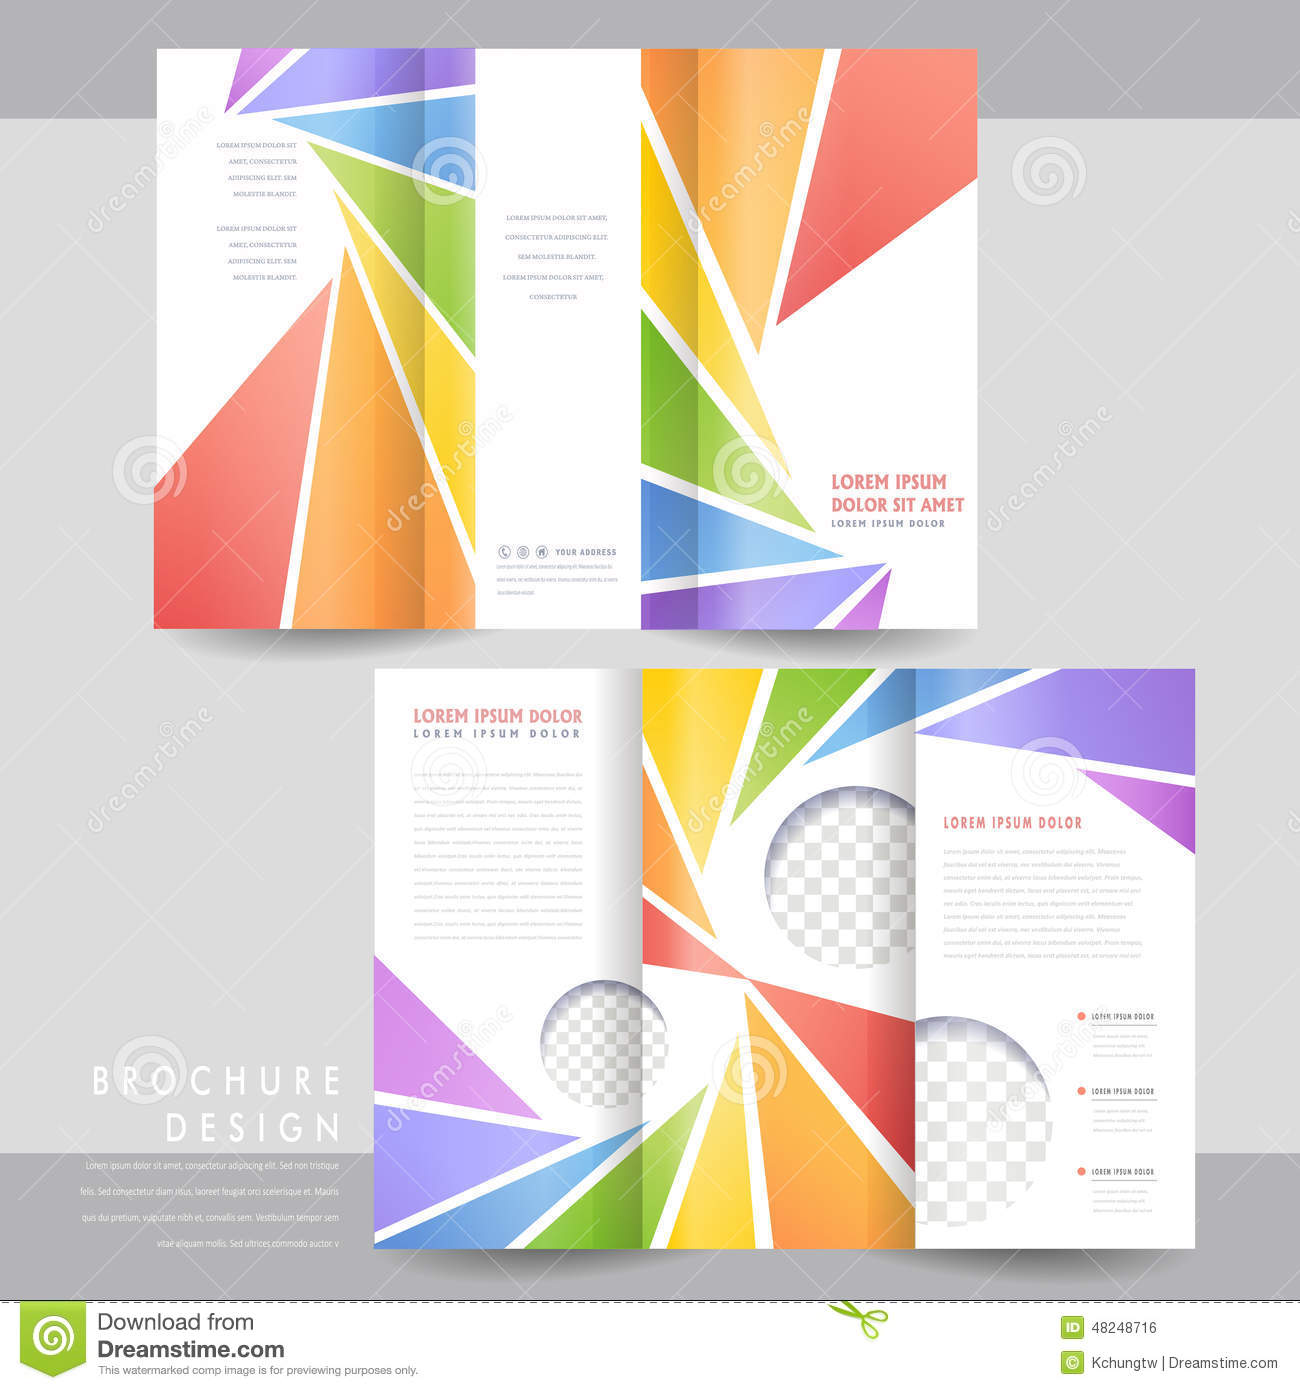 Colorful tri fold brochure template design stock vector for Tri fold brochure design templates